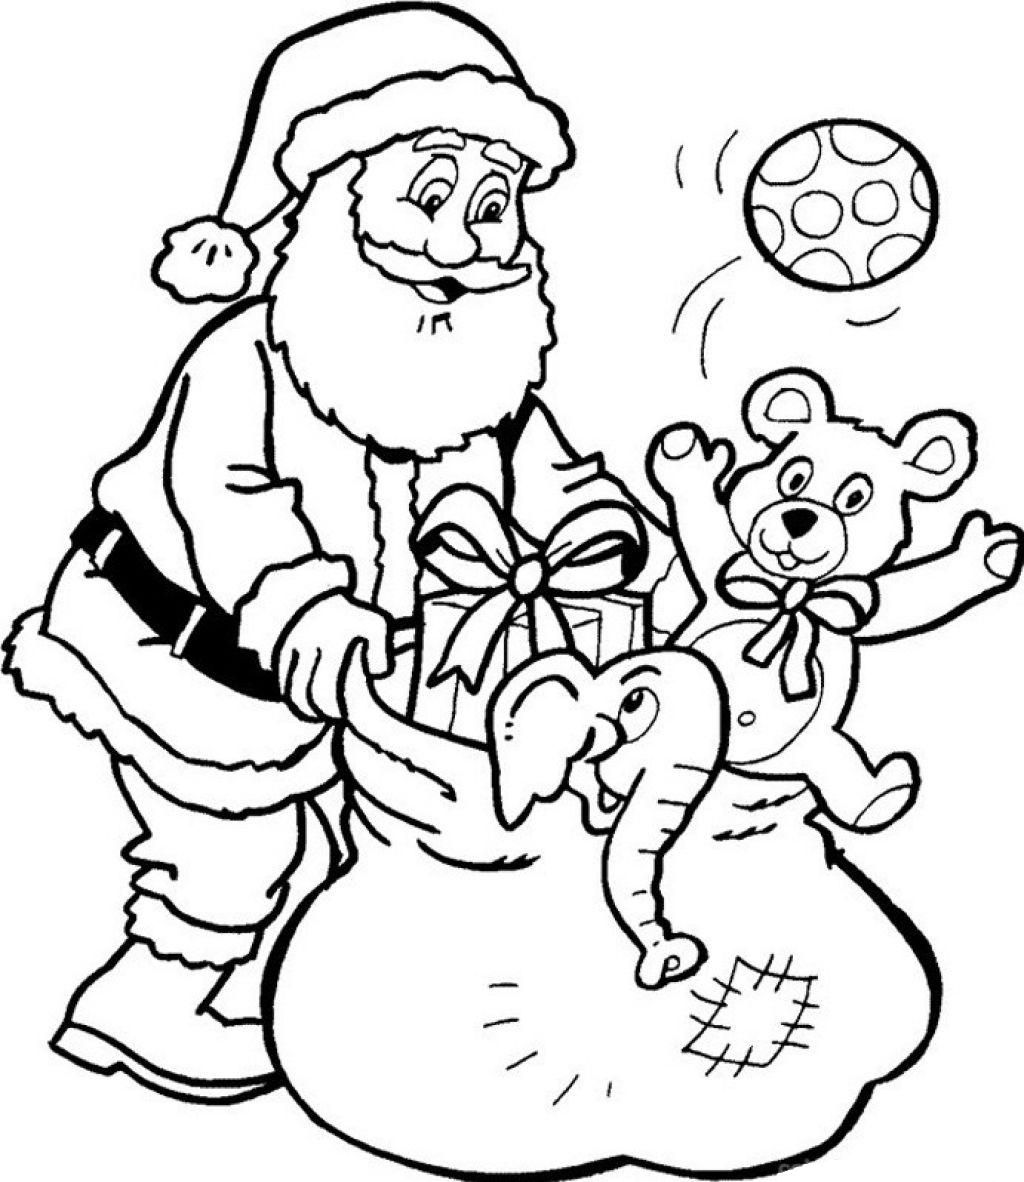 Santa Claus To Coloring With Pages For Toddlers Childrens Merry Christmas